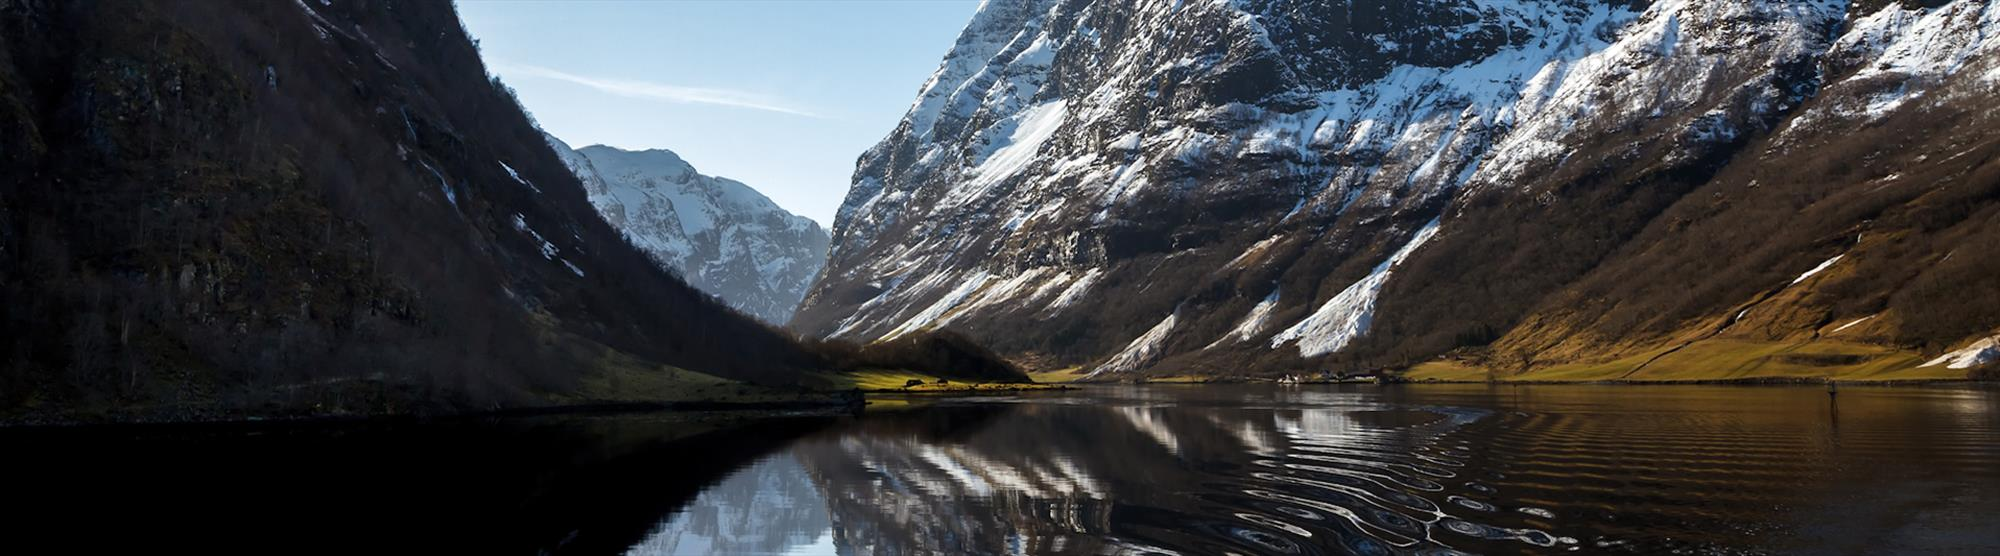 helicopter hire london with Fjord Tours From Bergen During Winter Season on Elite Helicopter New To Fleet besides LHR moreover Fjord Tours From Bergen During Winter Season as well Half Day Paintballing Experience Leeds additionally Private Helicopter.